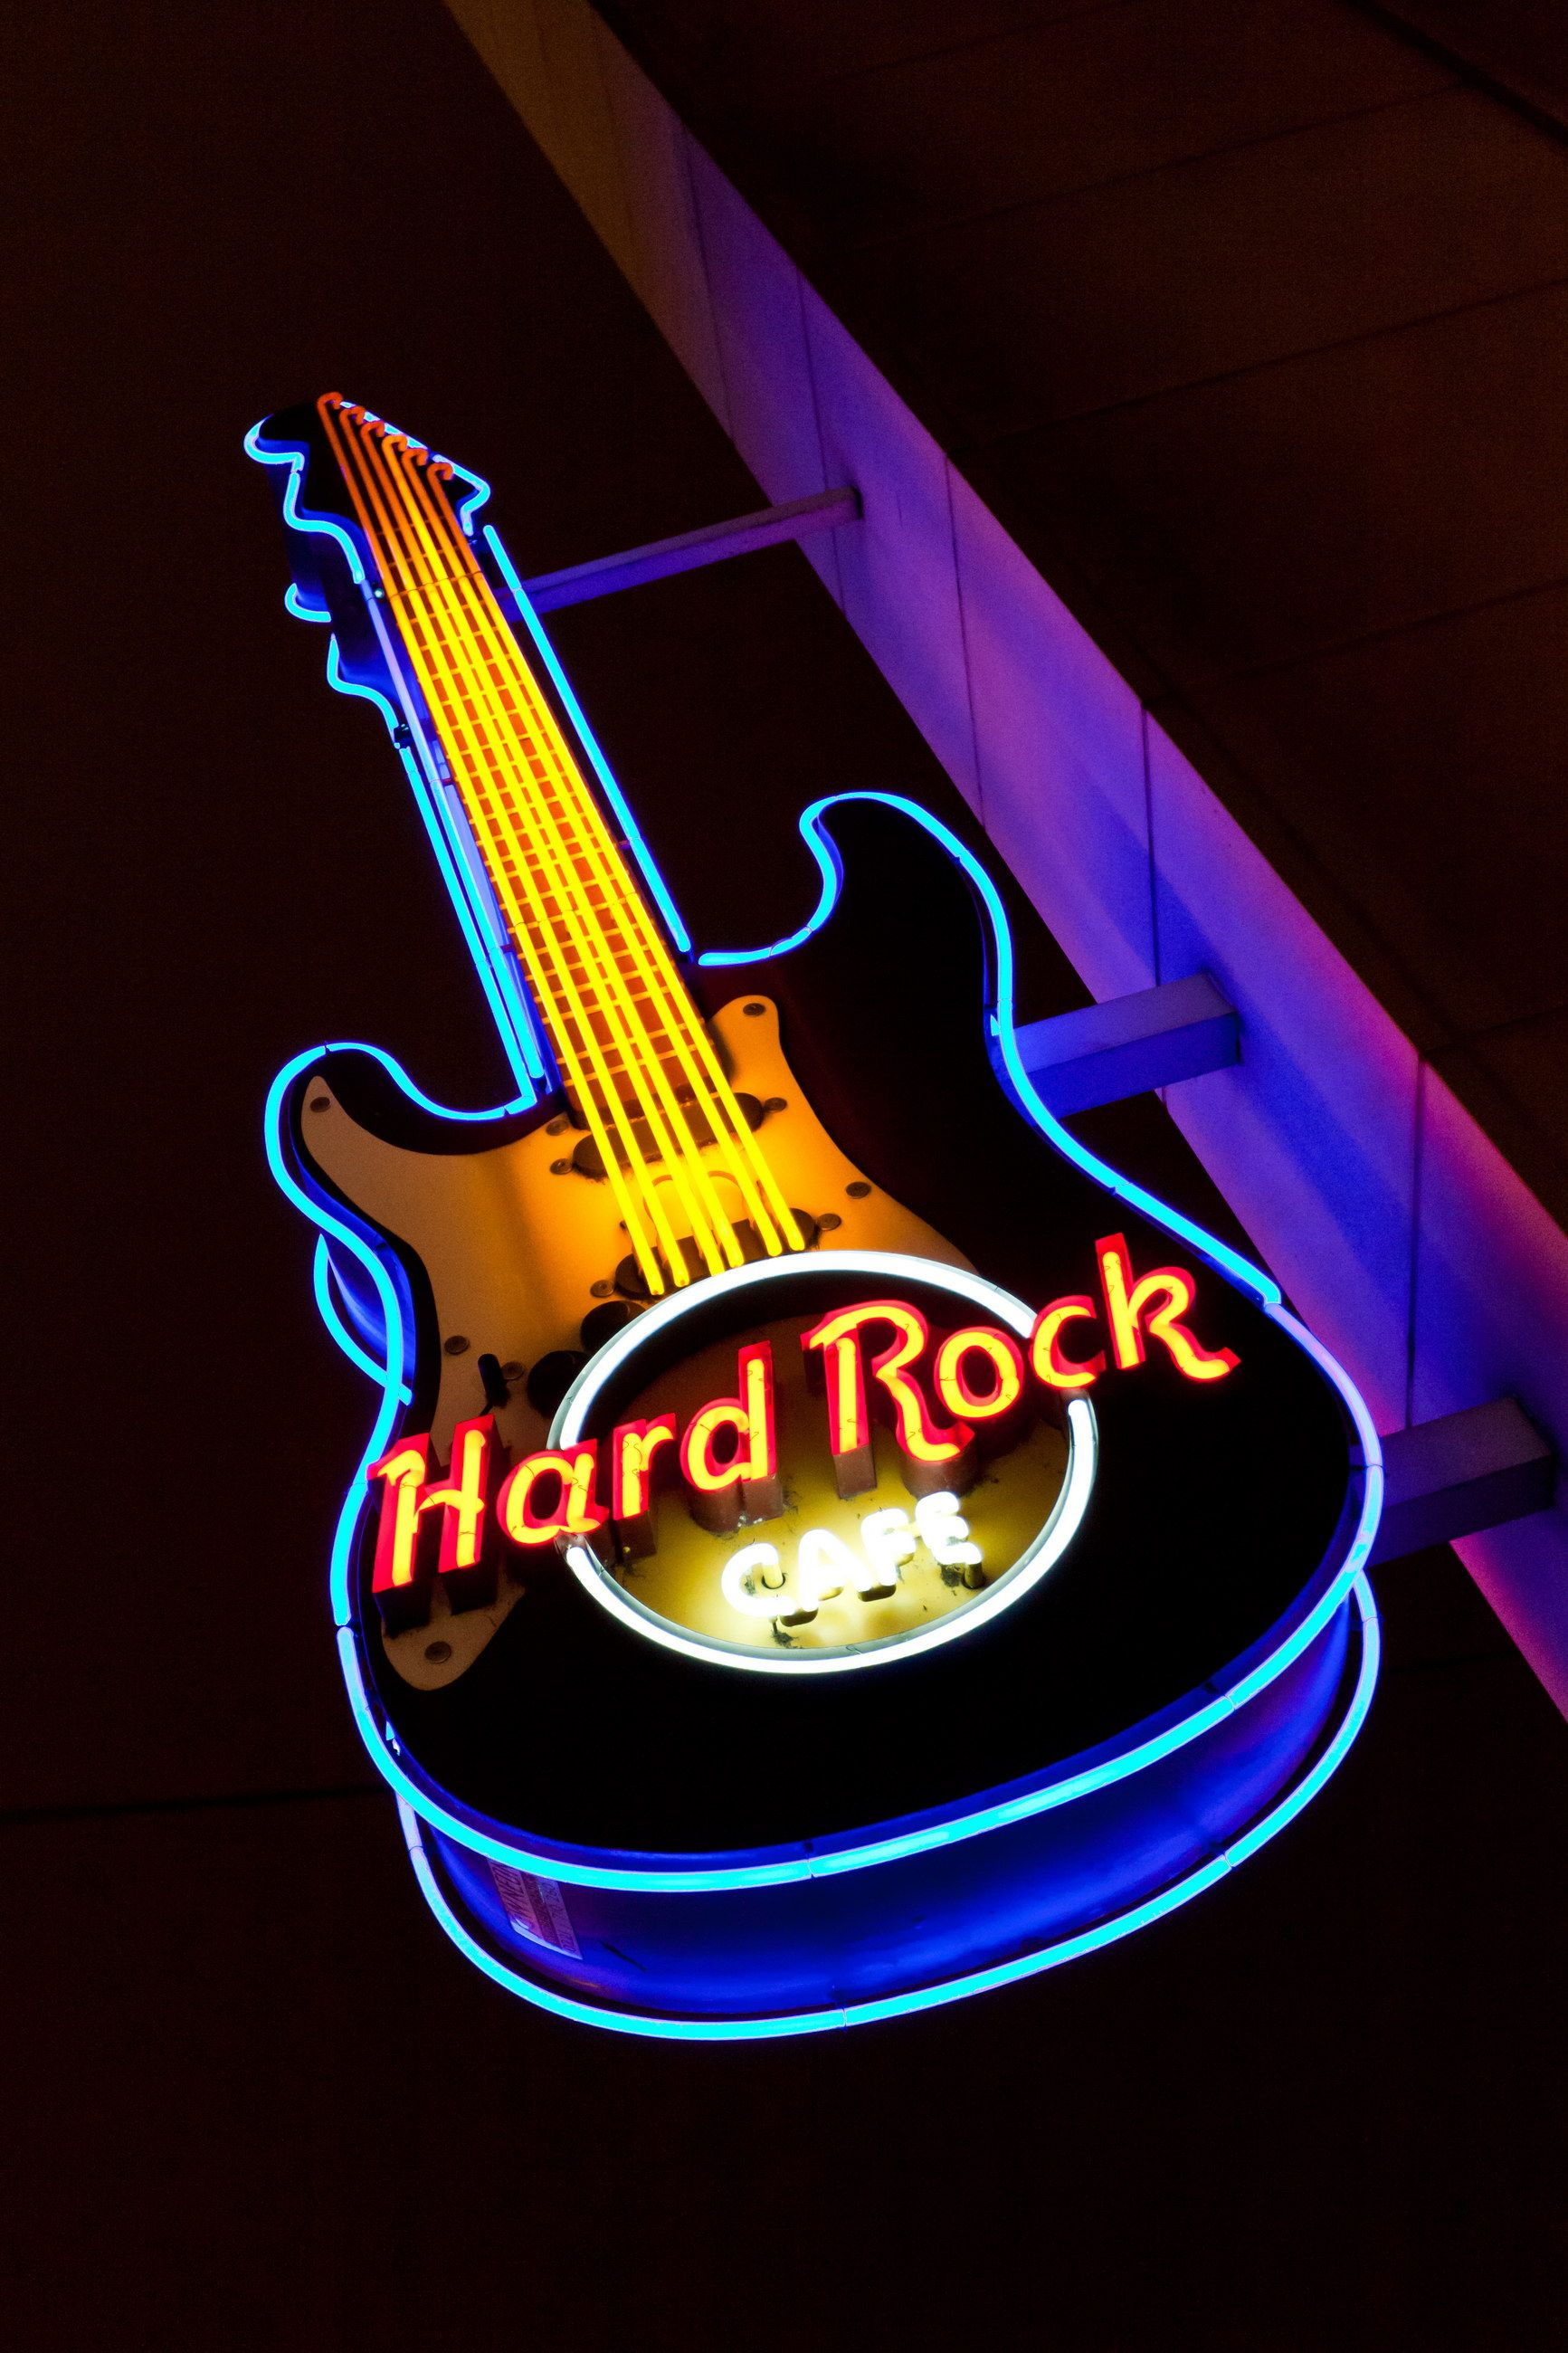 Hard Rock Cafe Cologne Outside I Ve Been To The Koln One A Few Times A Friend S Sister Works There Hard Rock Hard Rock Cafe Neon Signs